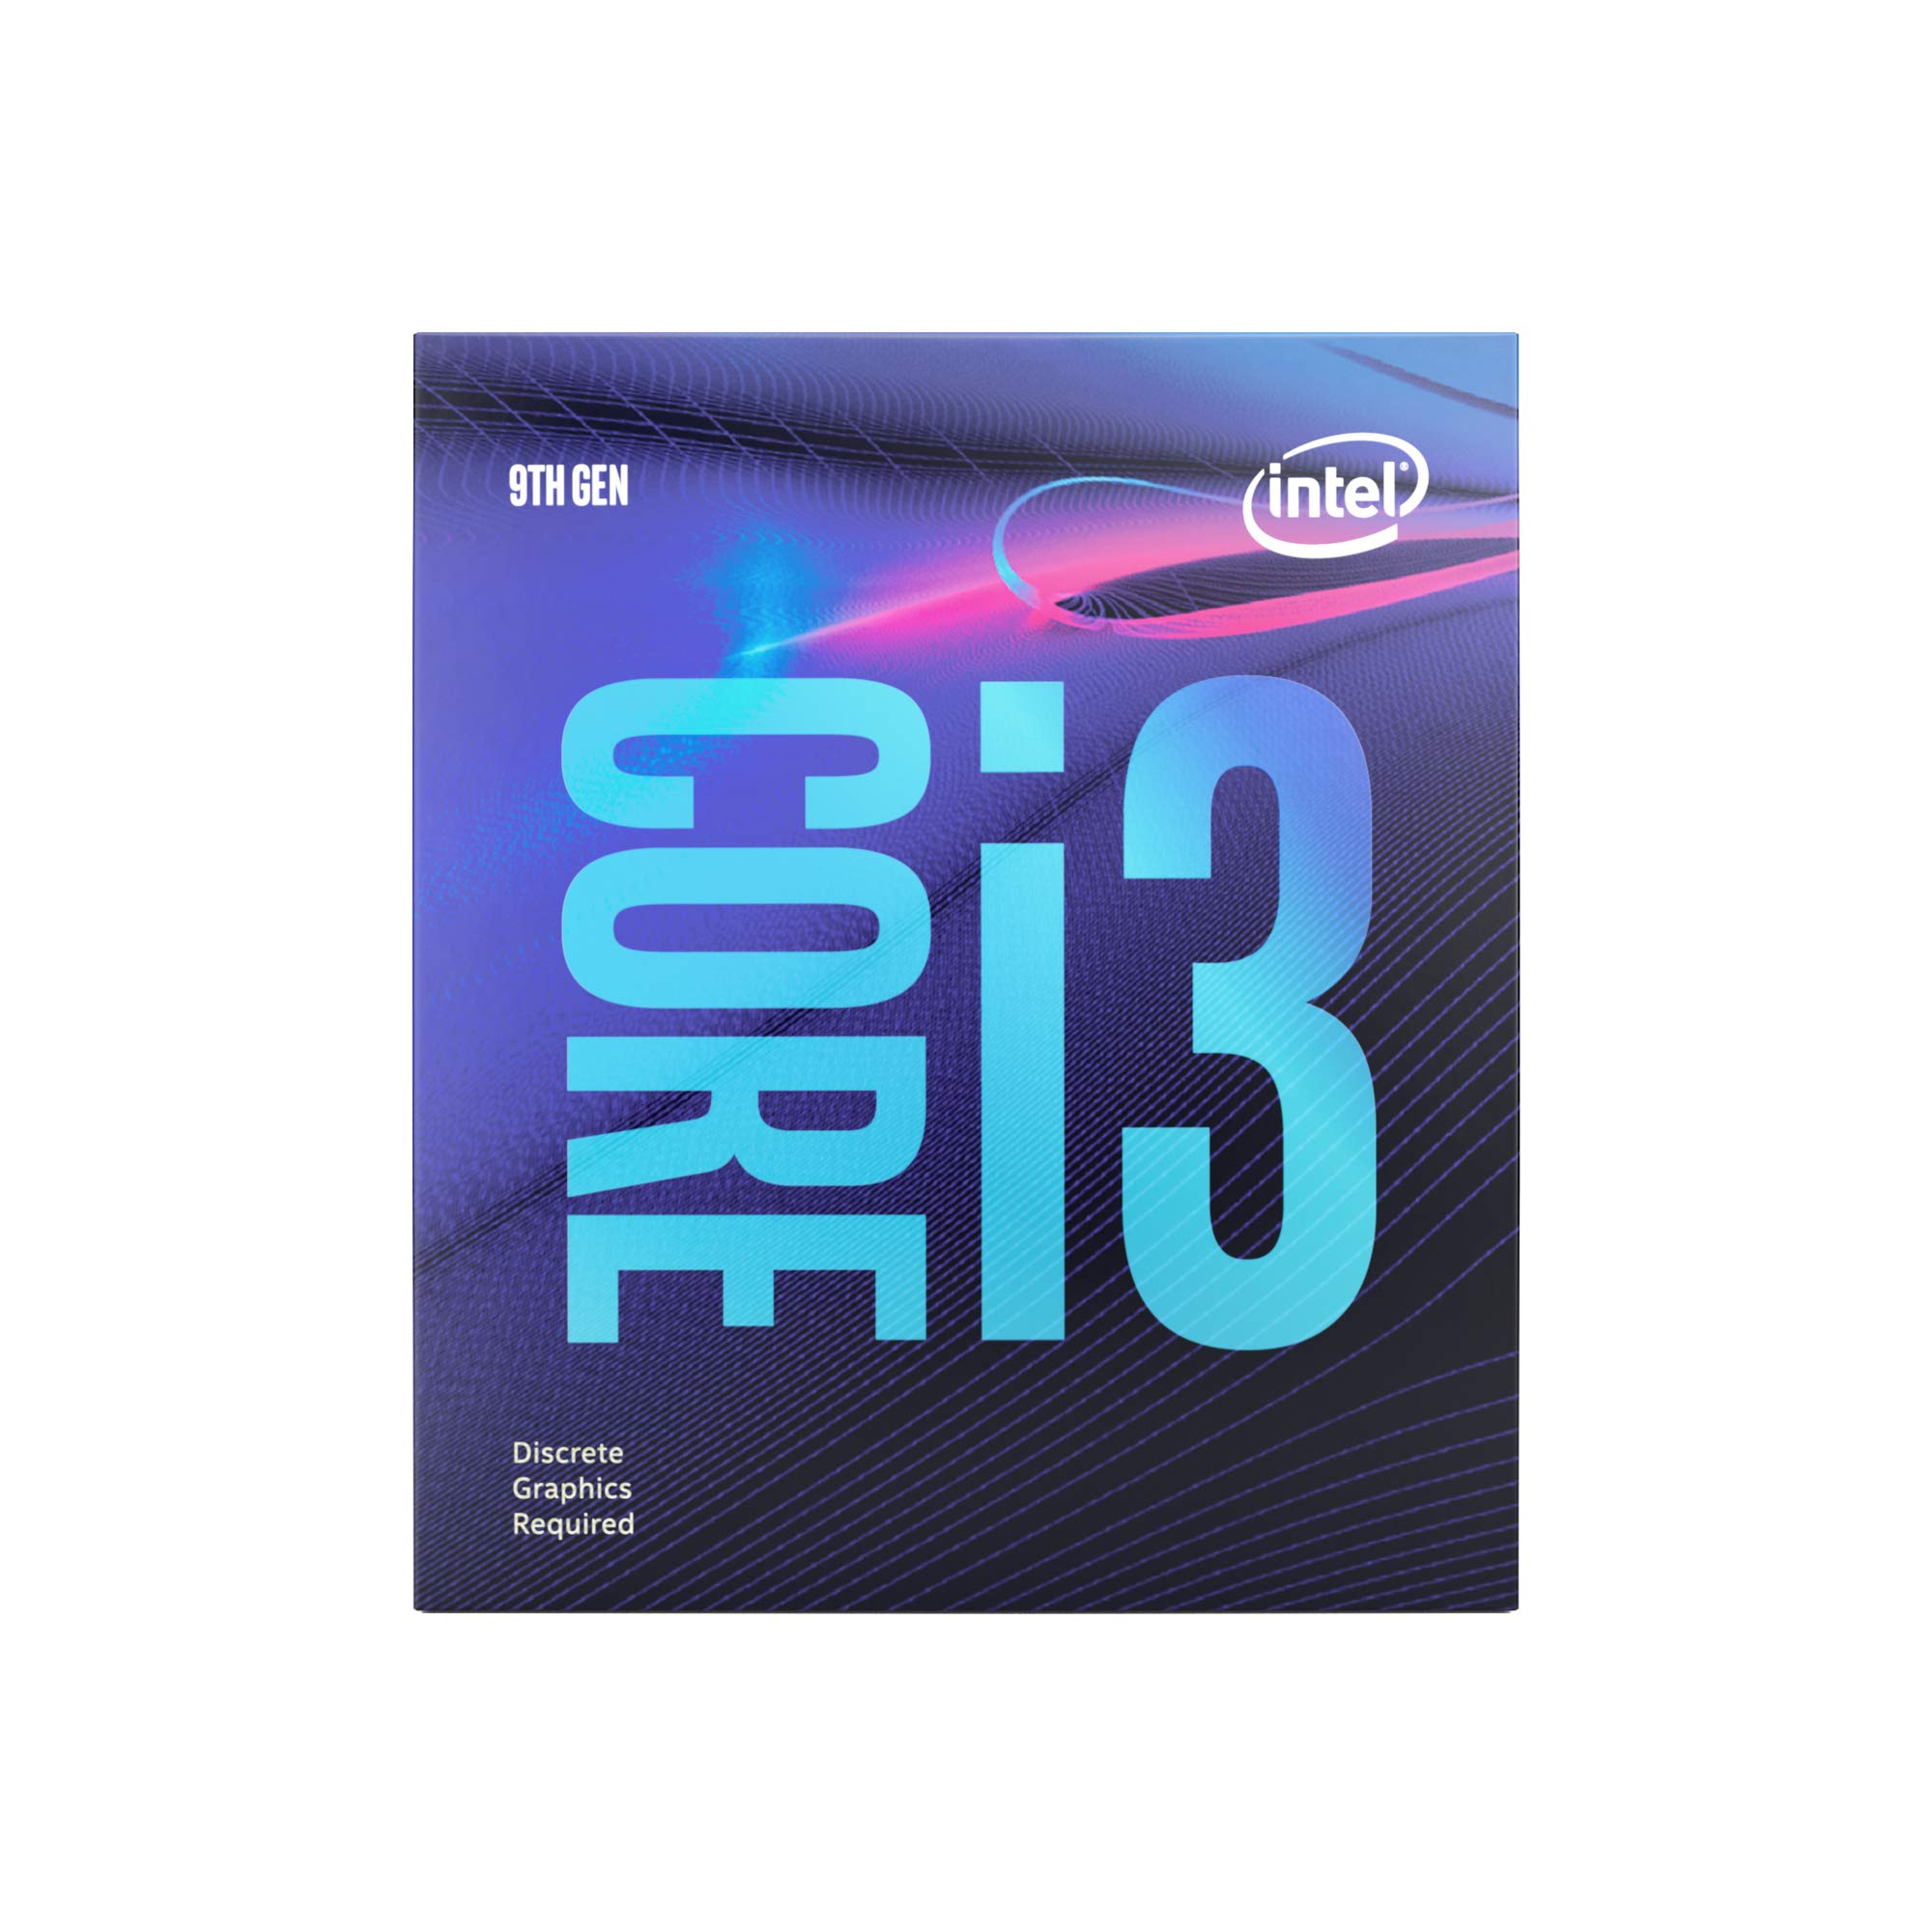 Intel Core I3-9100f 4 Core Up To 4.2 Ghz Without Graphics Lg